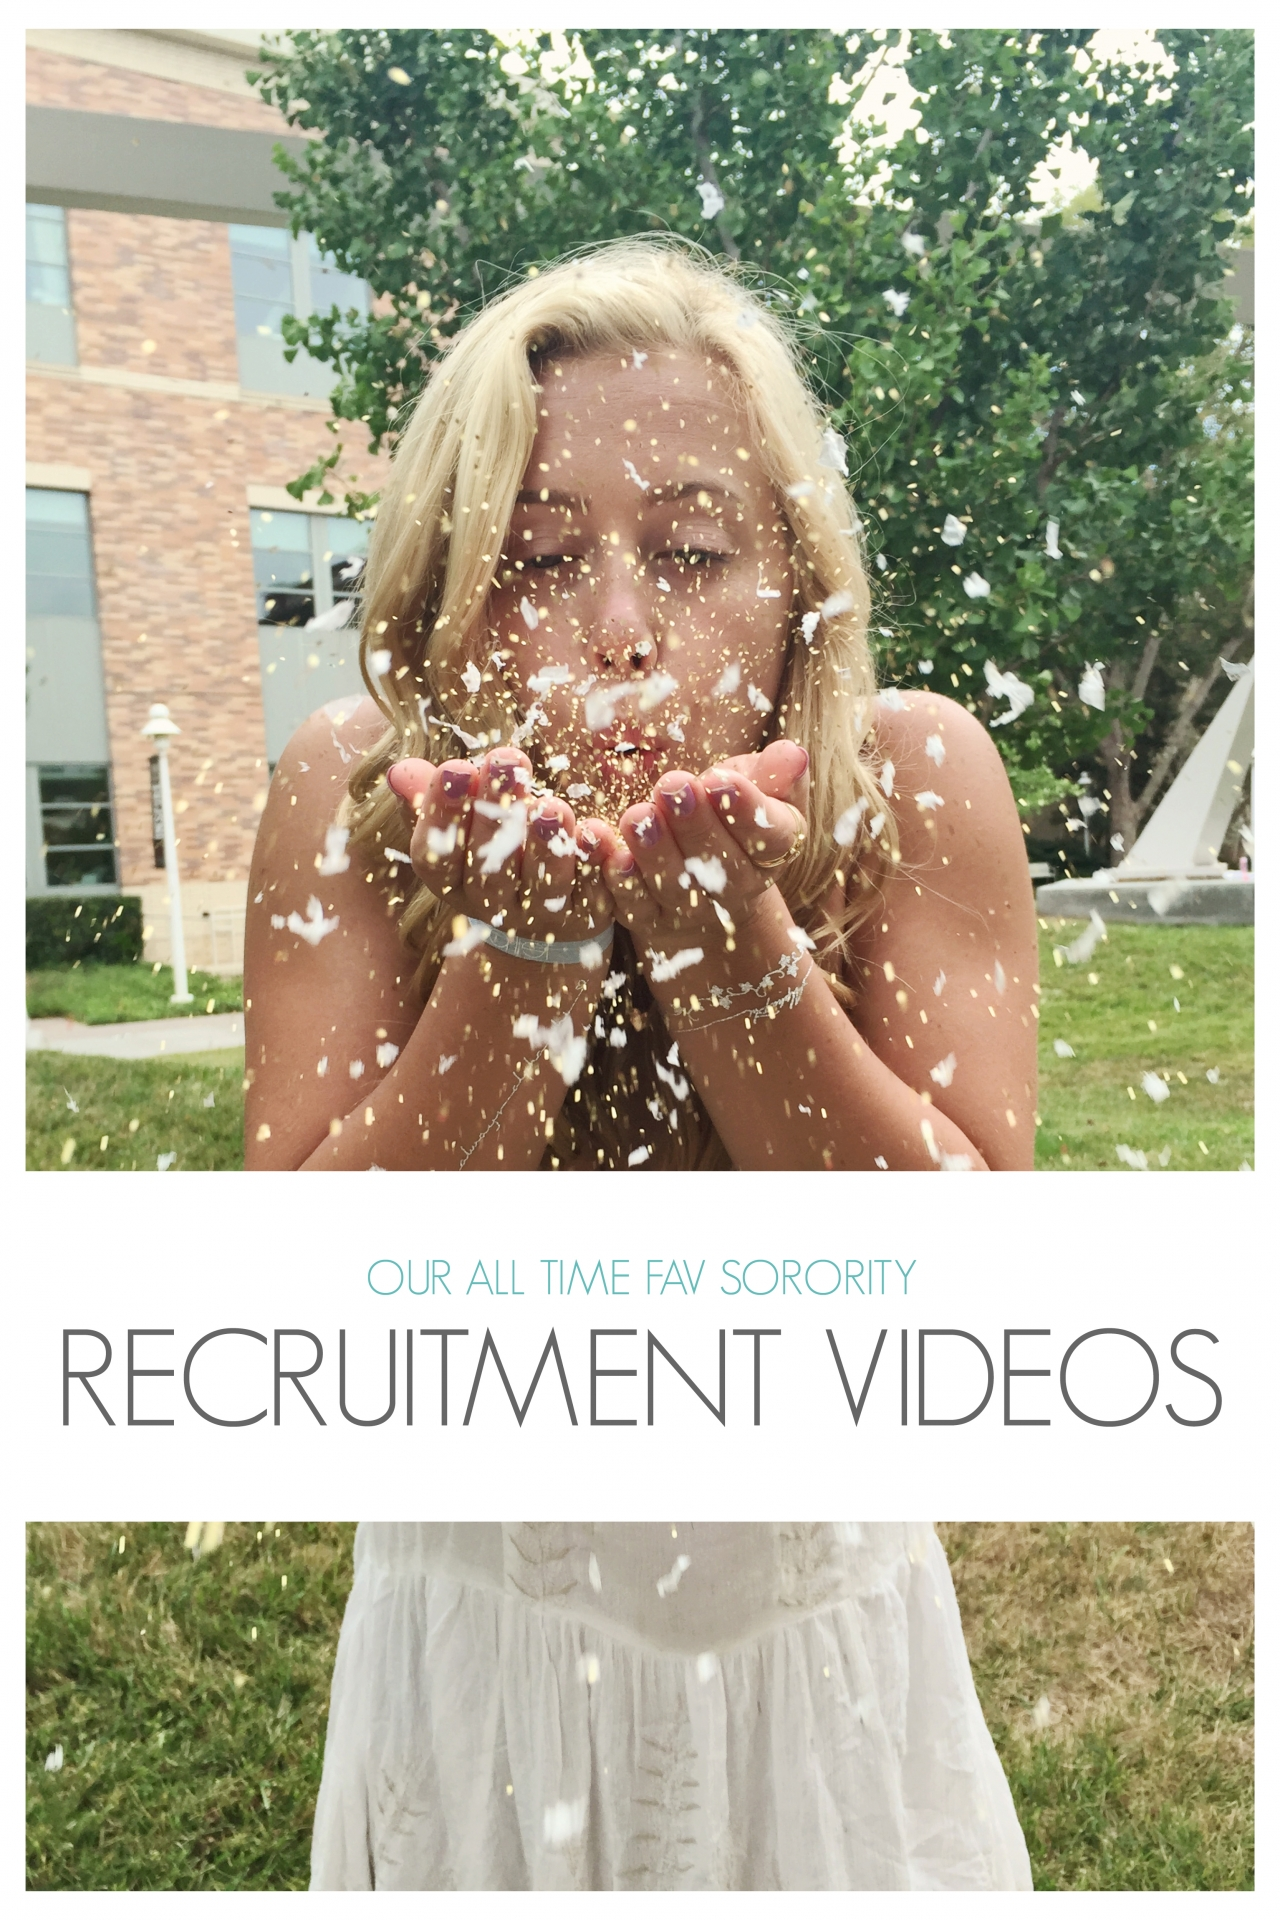 Fave Sorority Recruitment Videos Featured Image